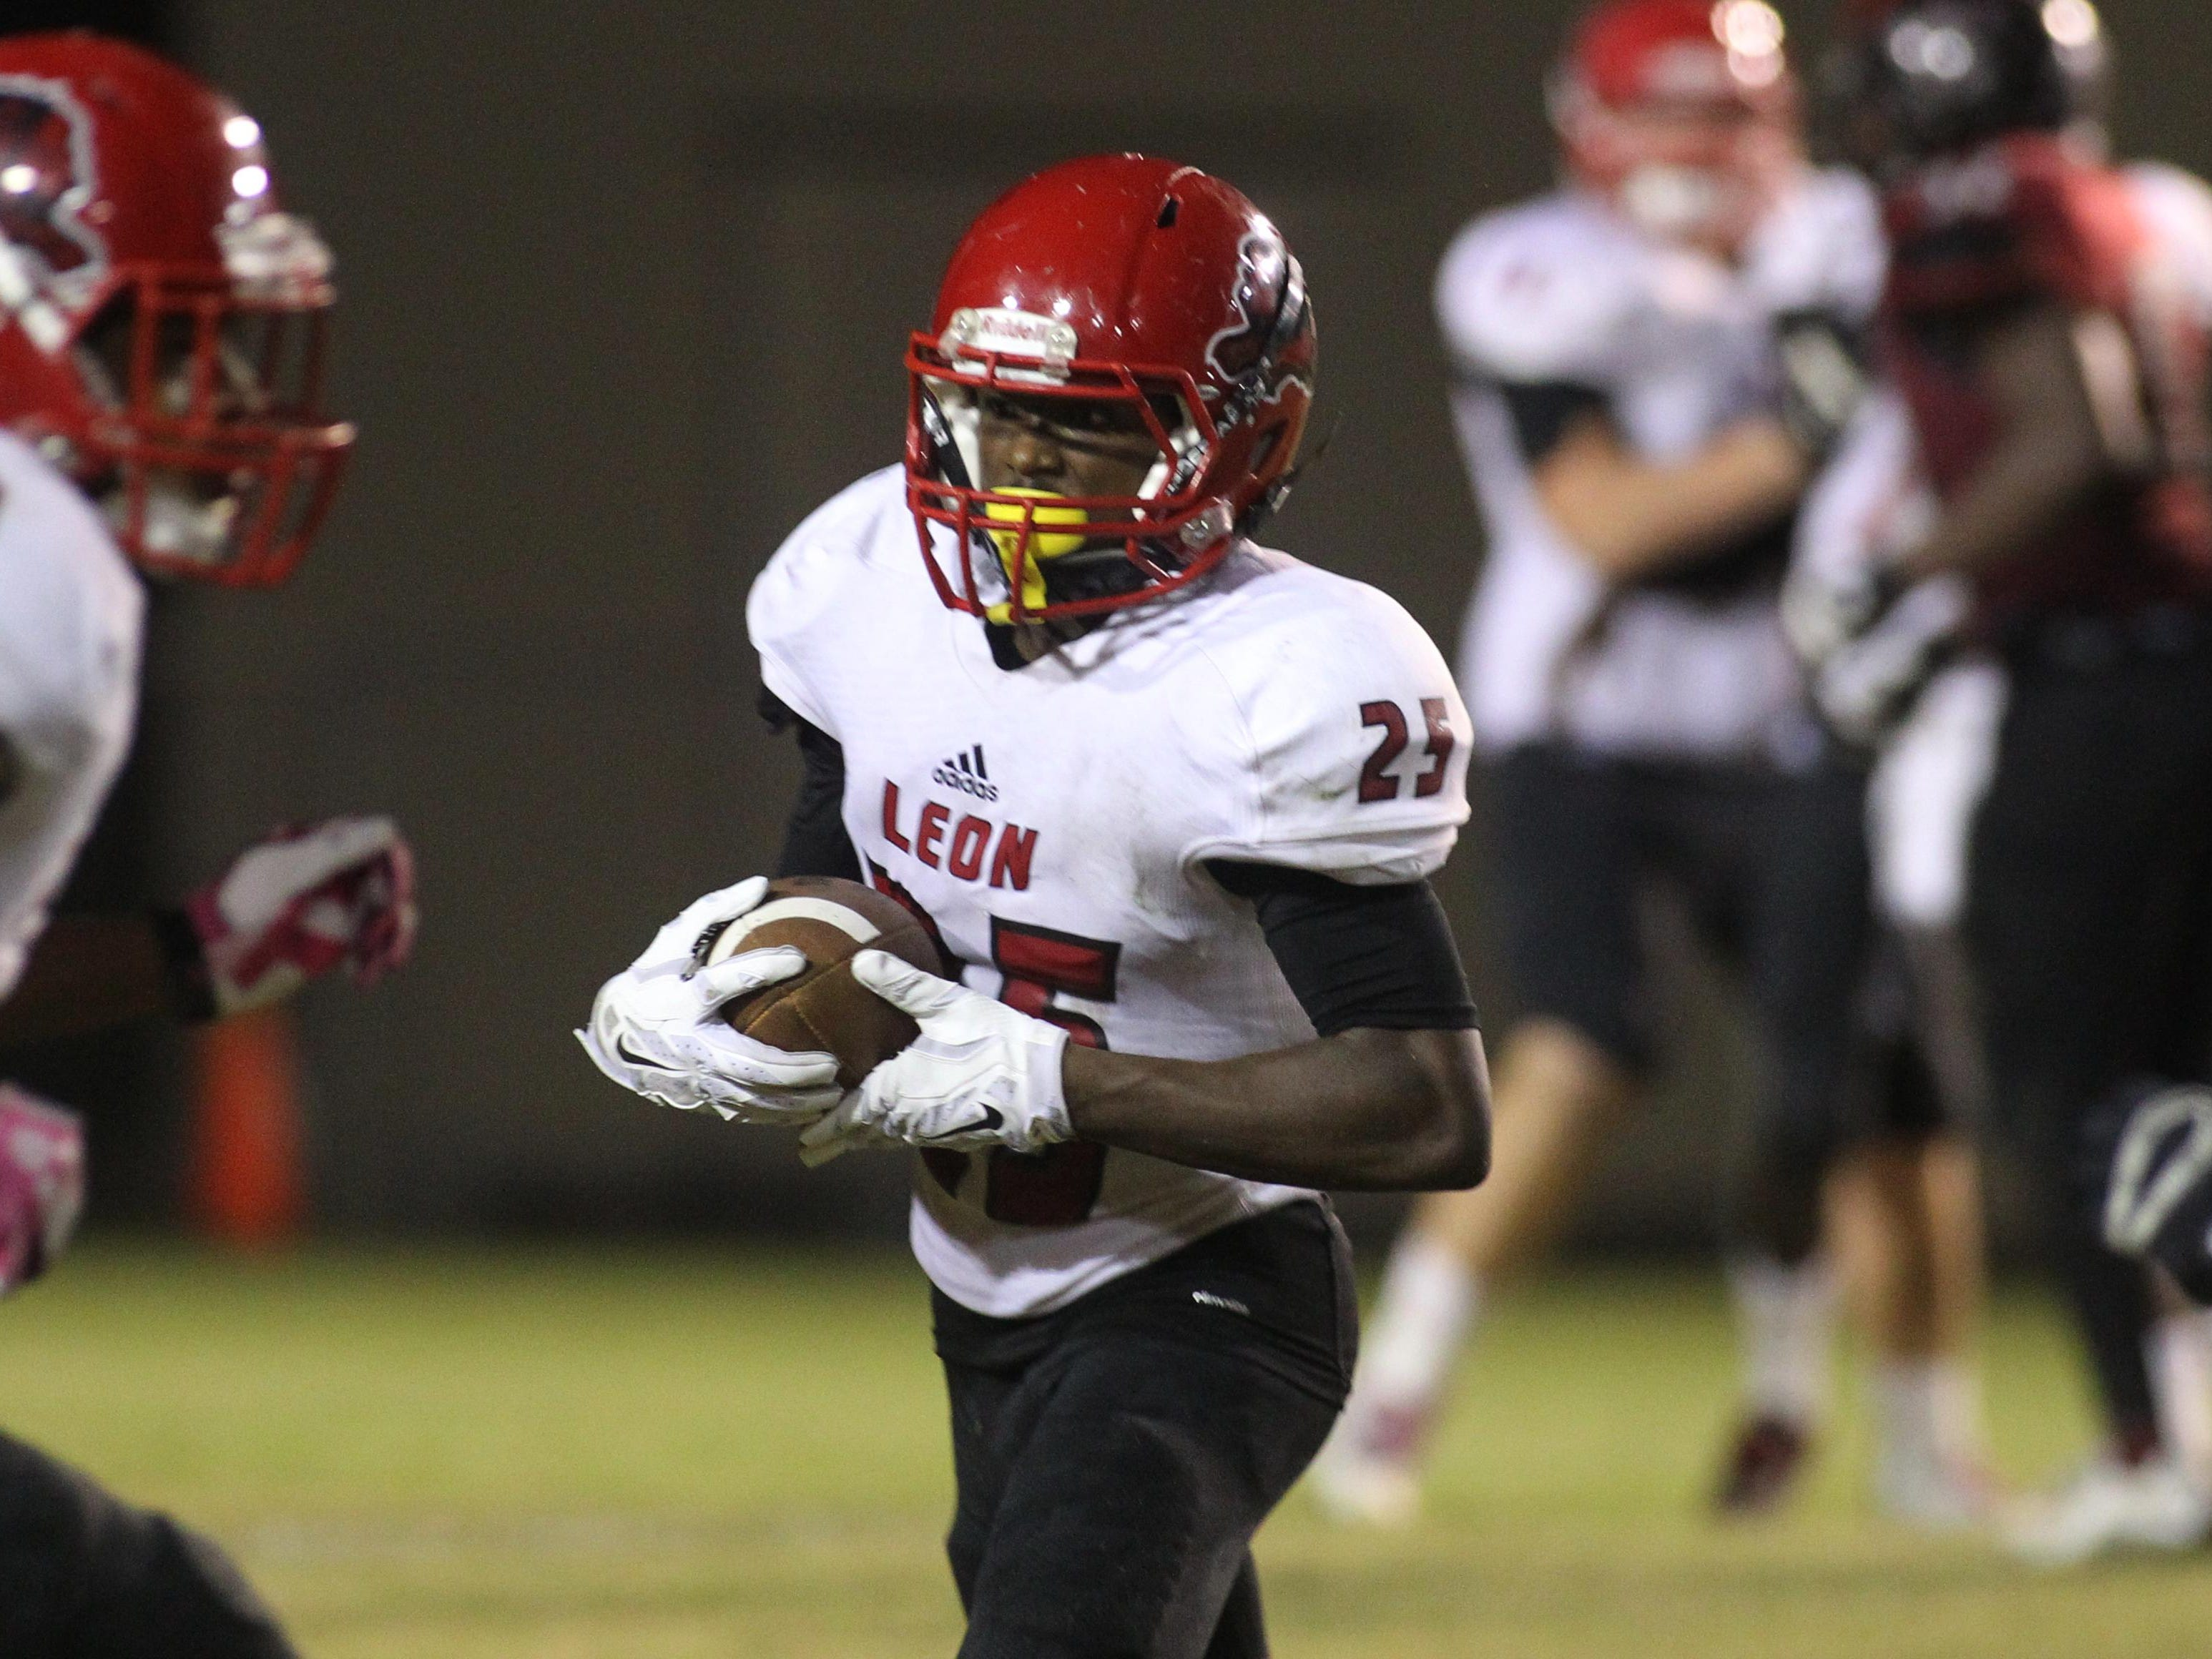 Leon receiver Javier Ferrer caught seven passes for 95 yards and the game-winning touchdown with 28 seconds left as the Lions topped Chiles 22-21.